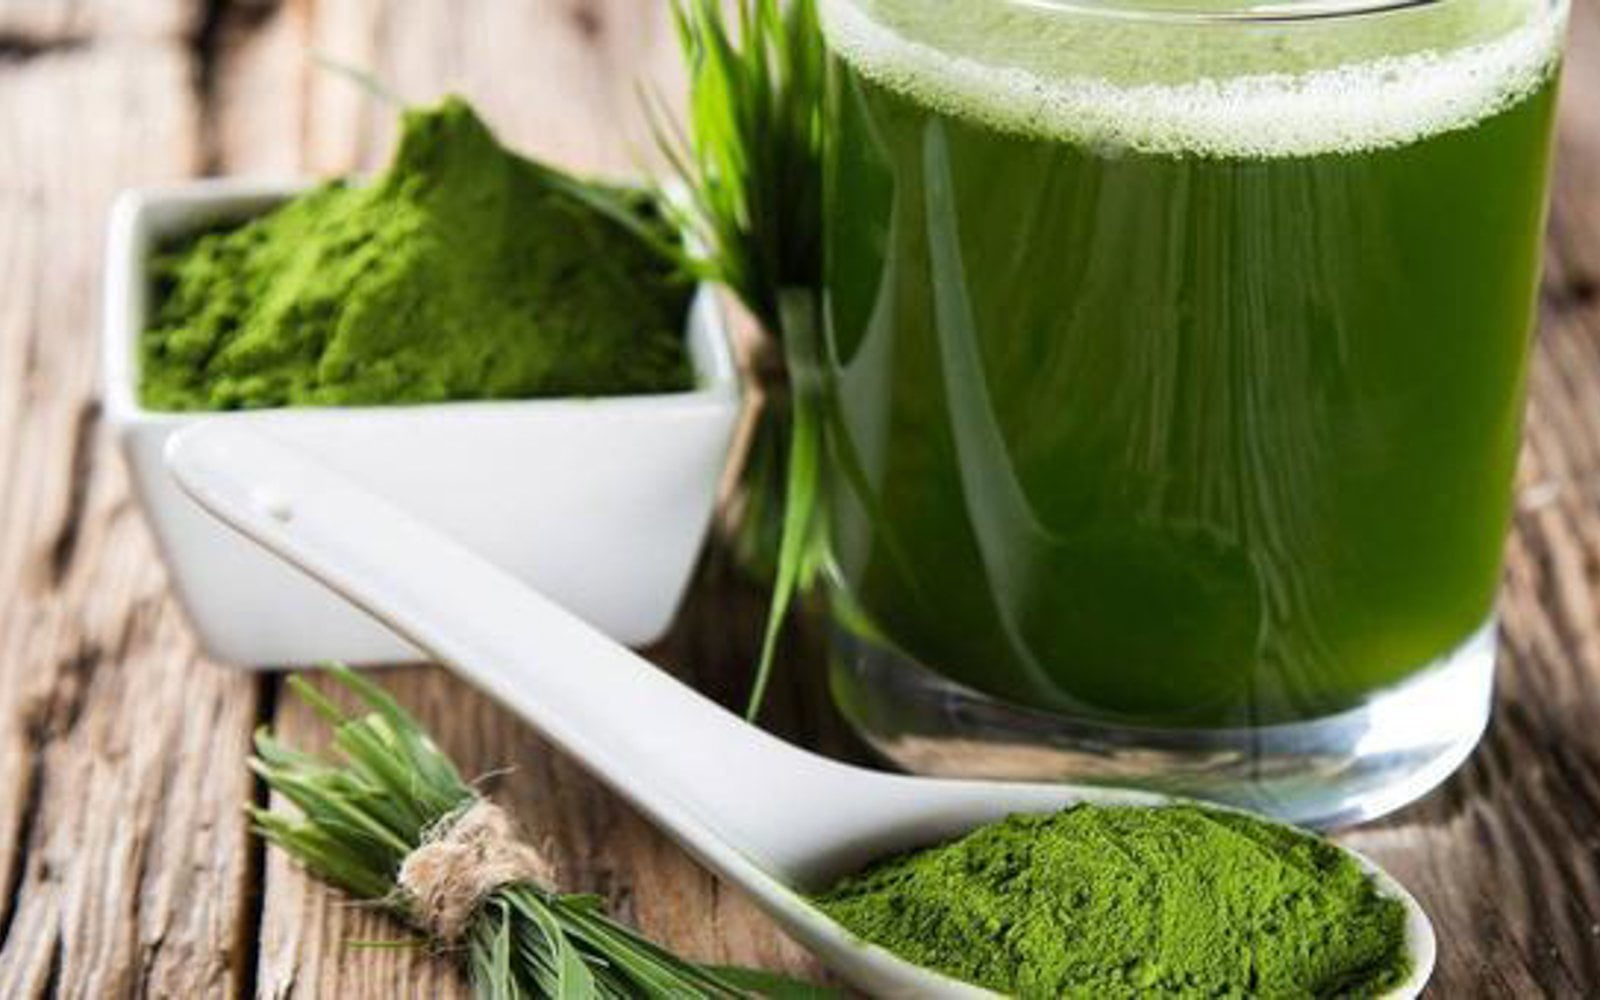 Spirulina benefits: 10 reasons to try it